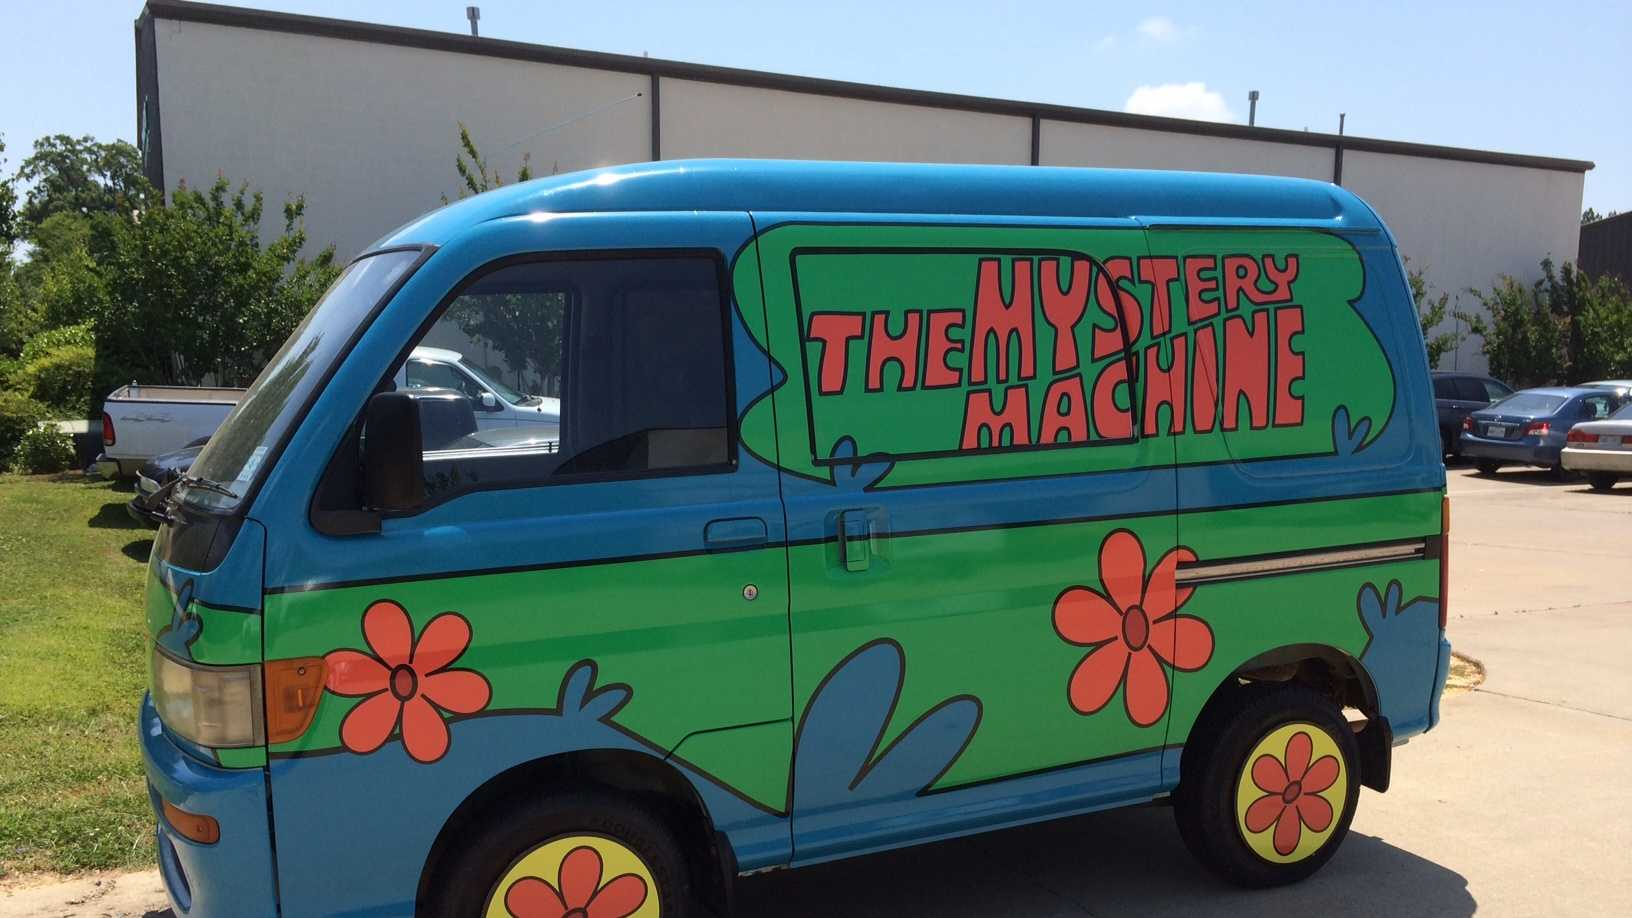 Dig Creative Solutions in Flowood designed the Mystery Machine for a customer.